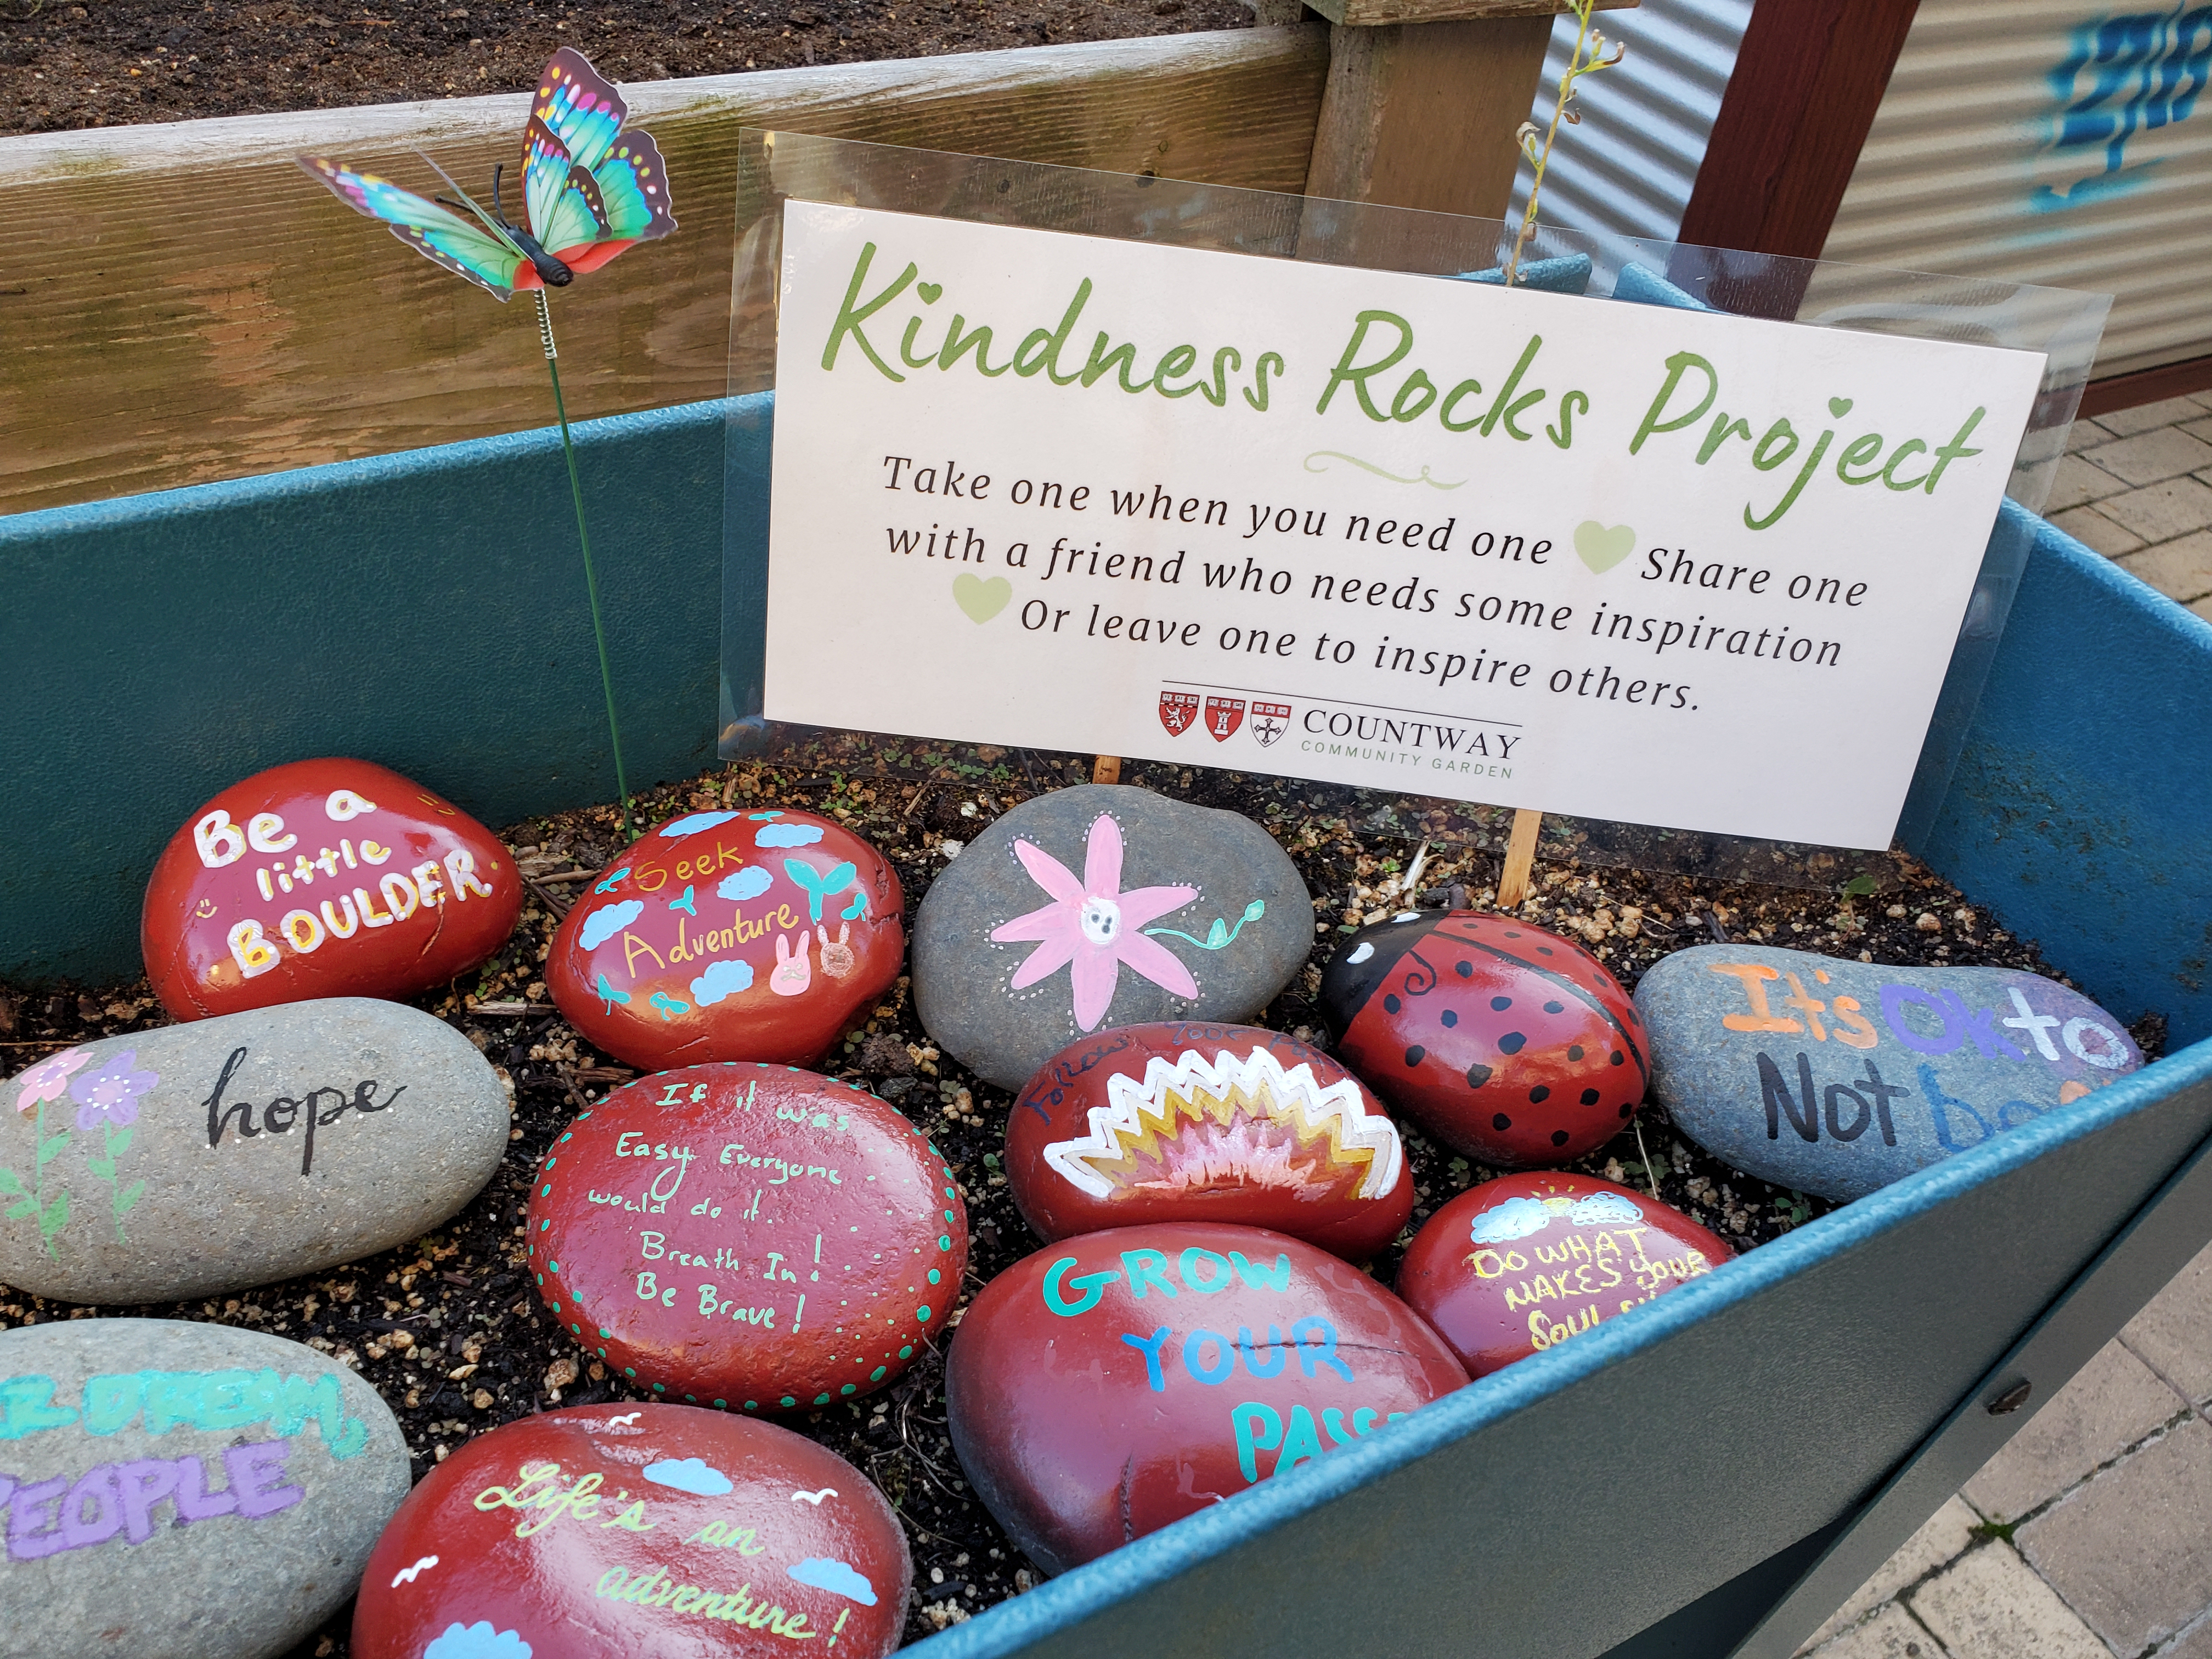 Kindness Rocks Project: Drop-in Rock Painting